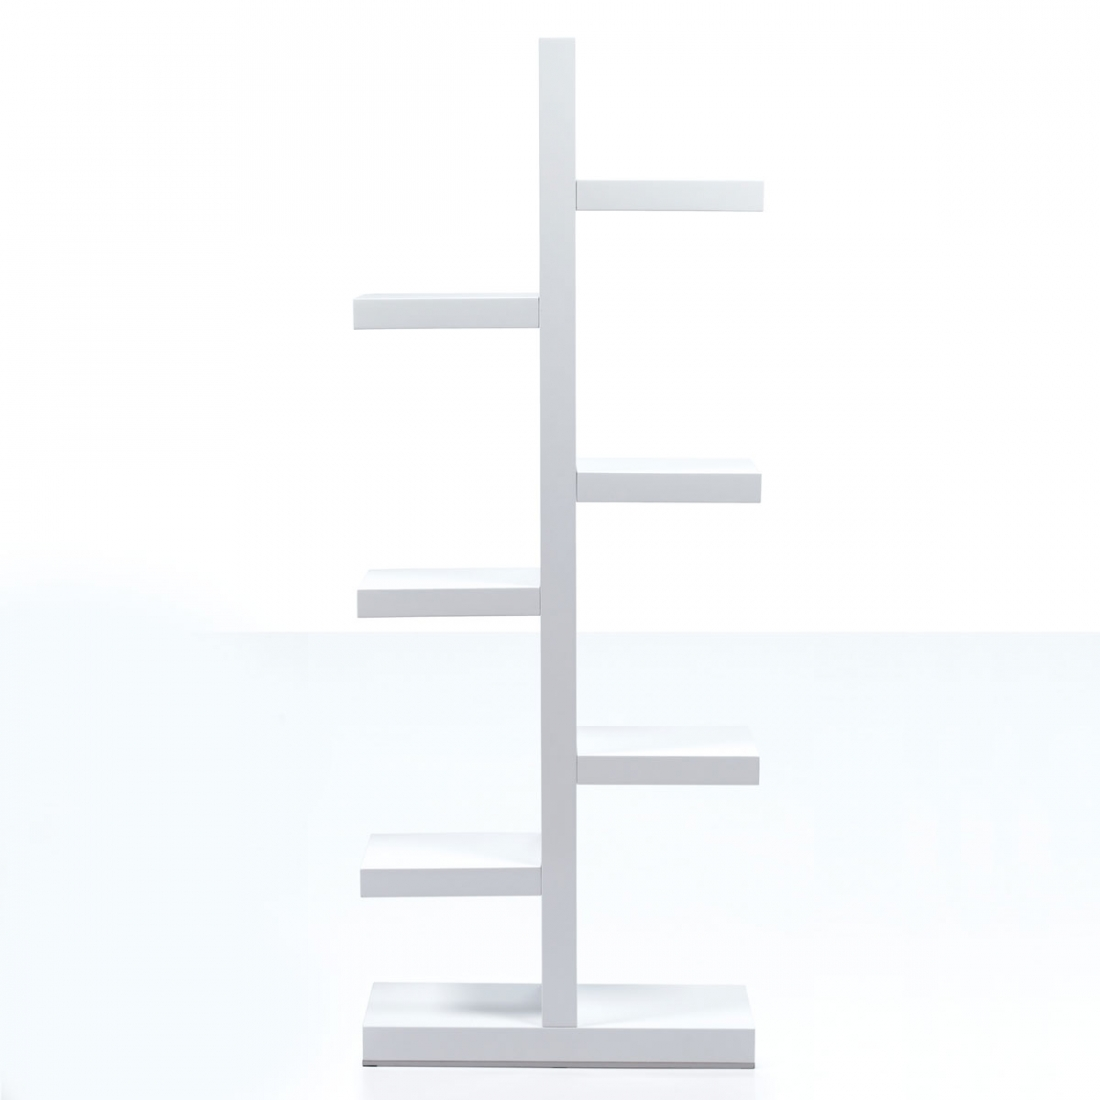 Meuble etagere design la scala zendart design - Meuble etagere design ...